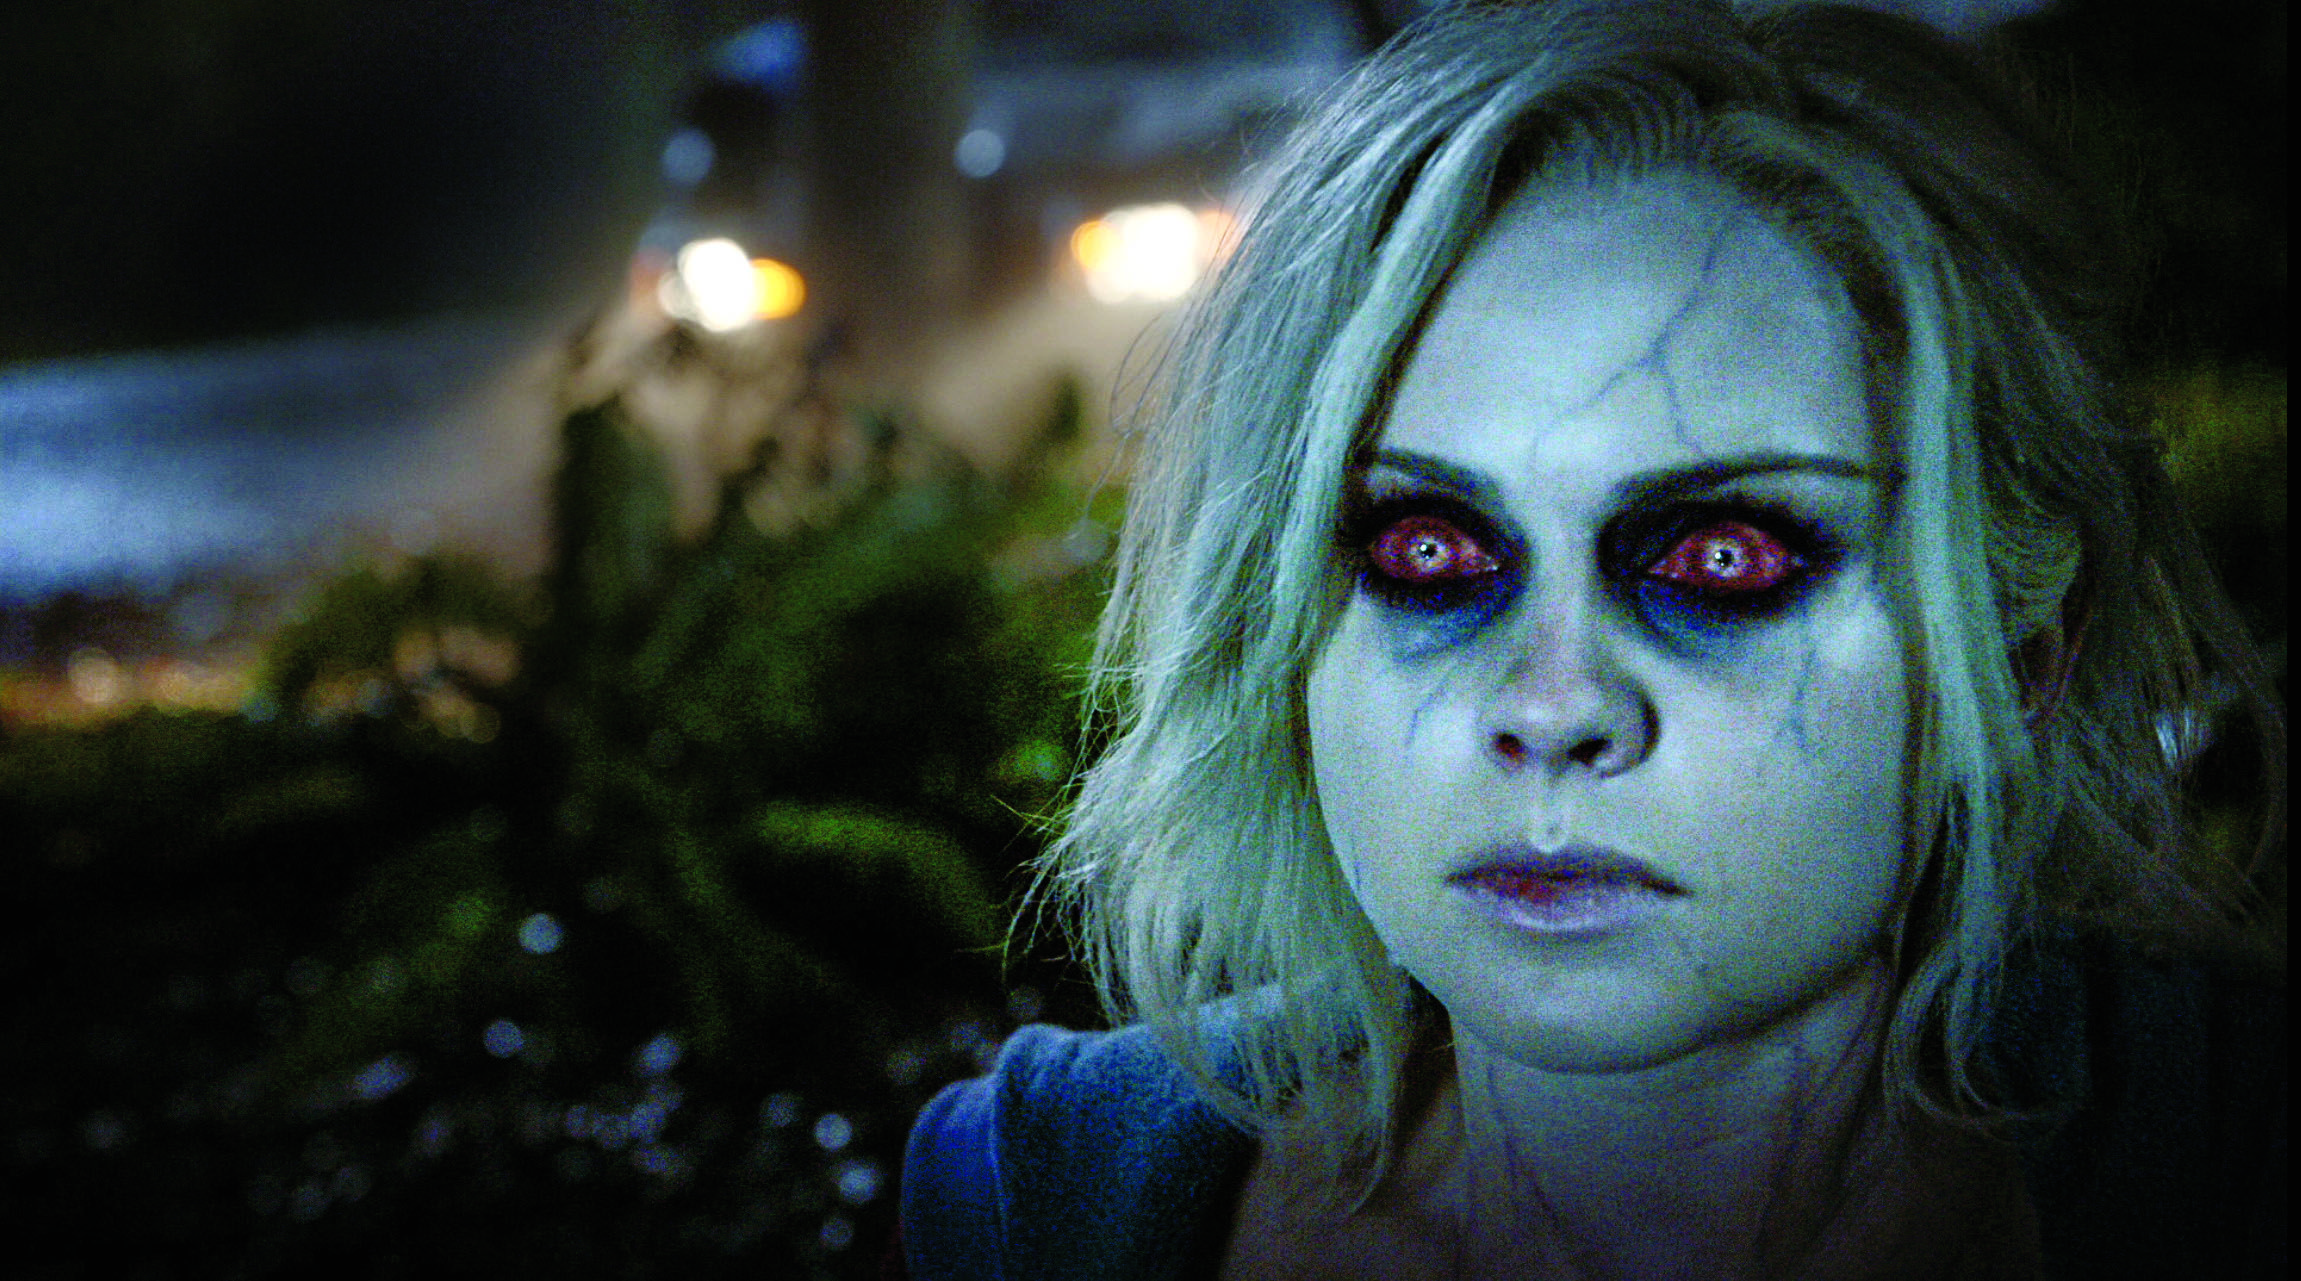 liv moore full on zombie - Google Search | RAGE | Pinterest